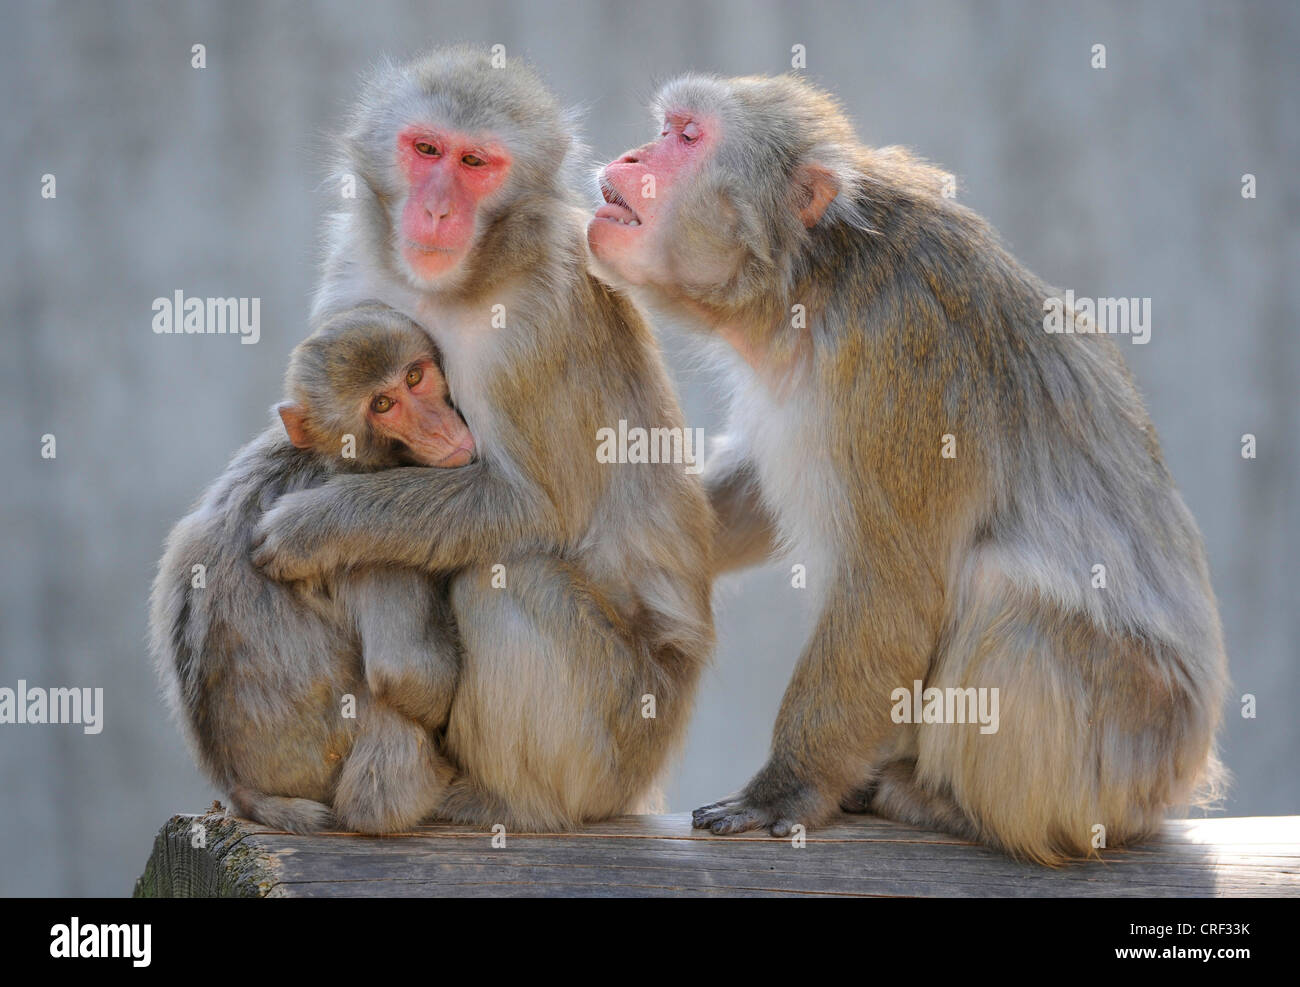 Japanese macaque, snow monkey (Macaca fuscata), three individuals - Stock Image